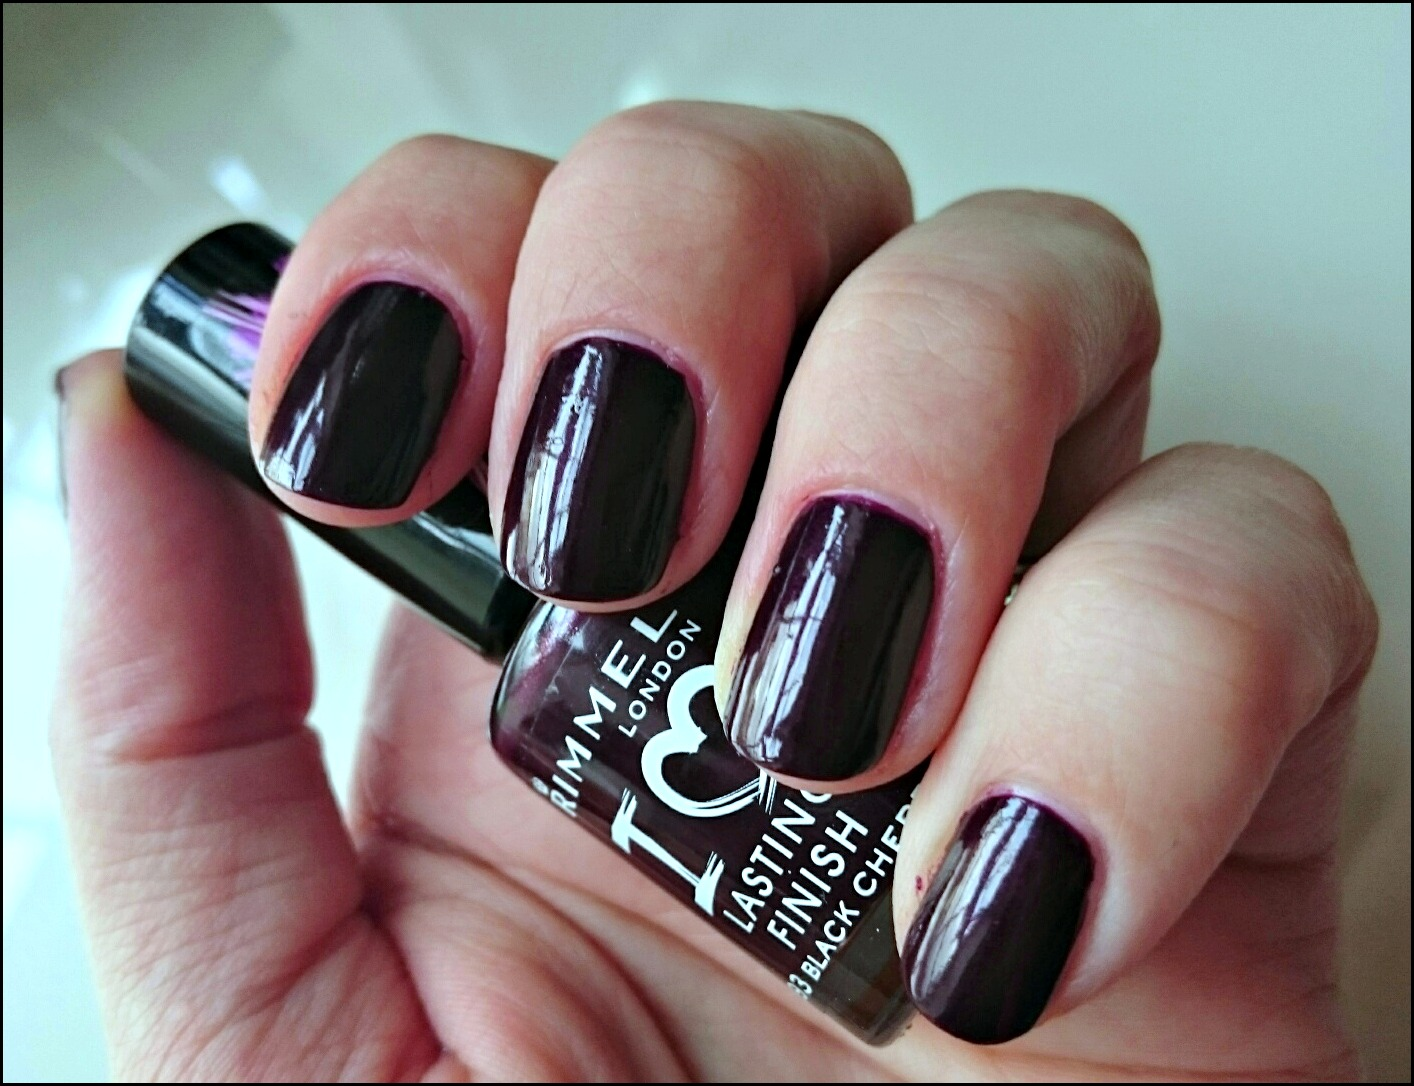 Rimmel lasting Finish Black cherry